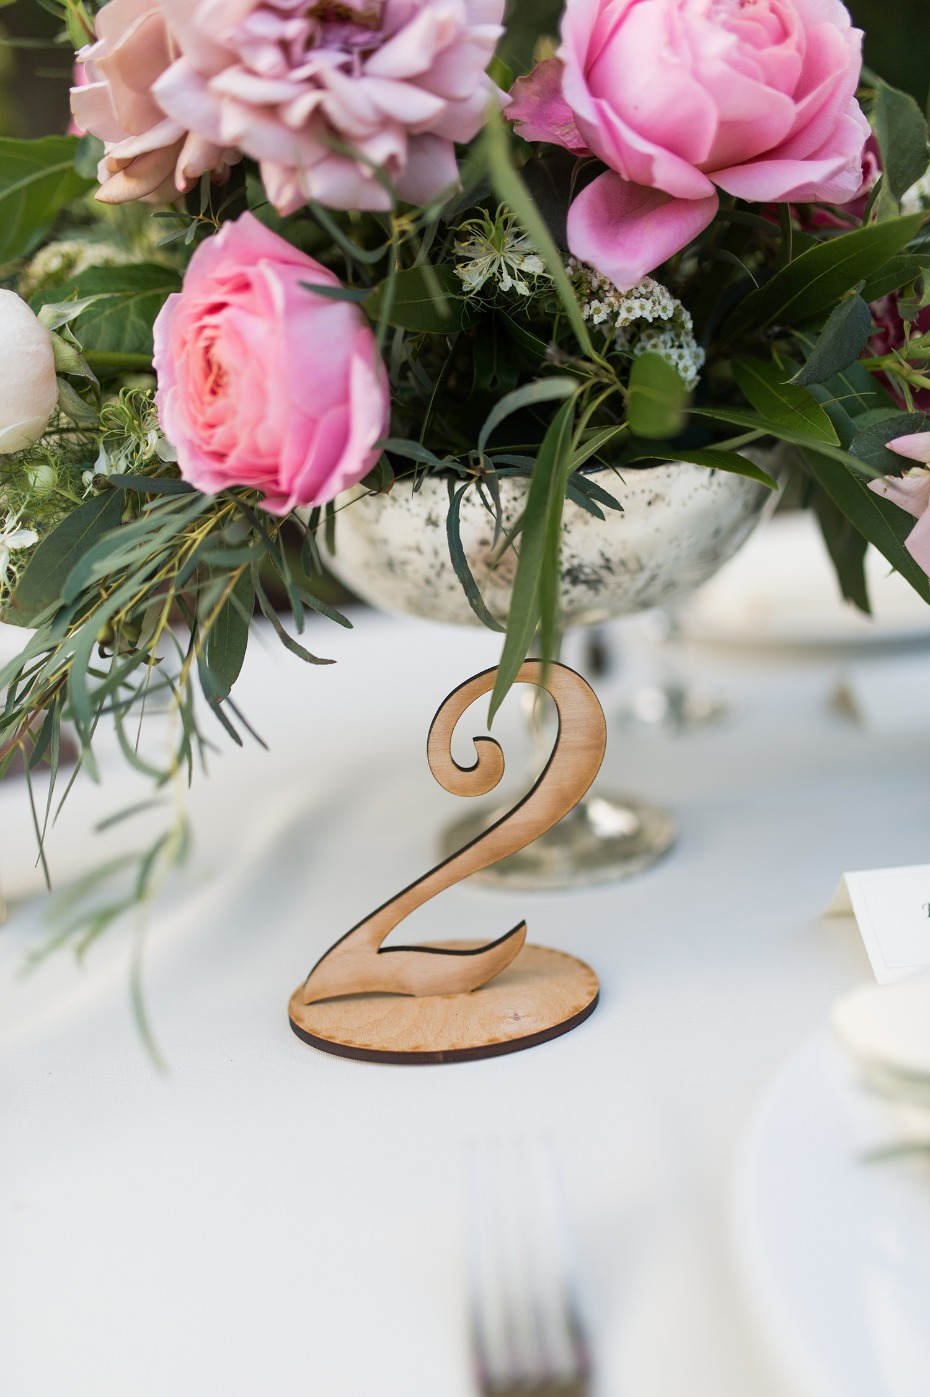 Wood cut table number